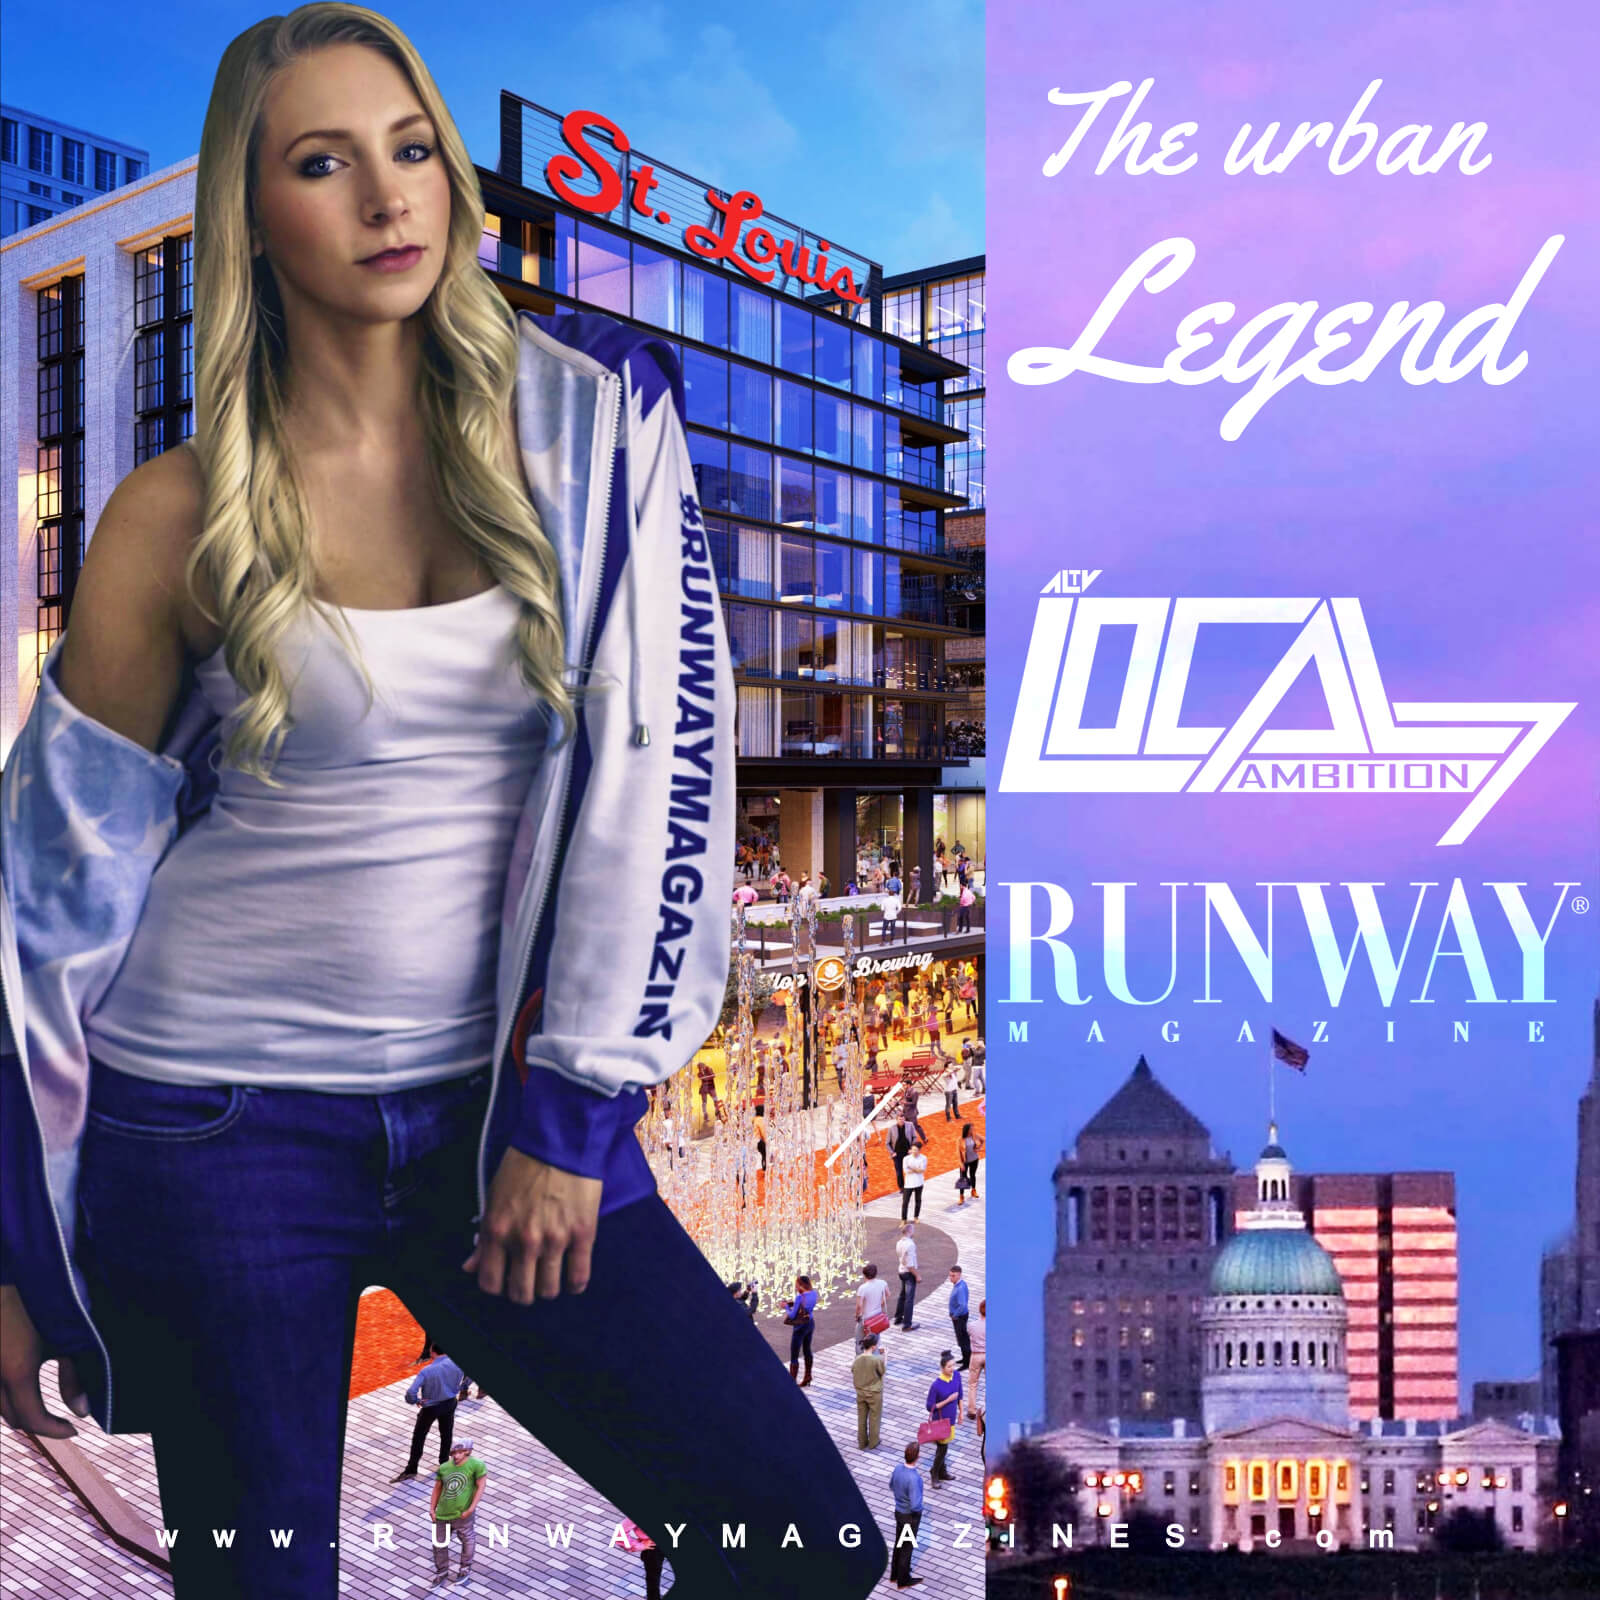 The Urban Legend of St Louis by RUNWAY MAGAZINE